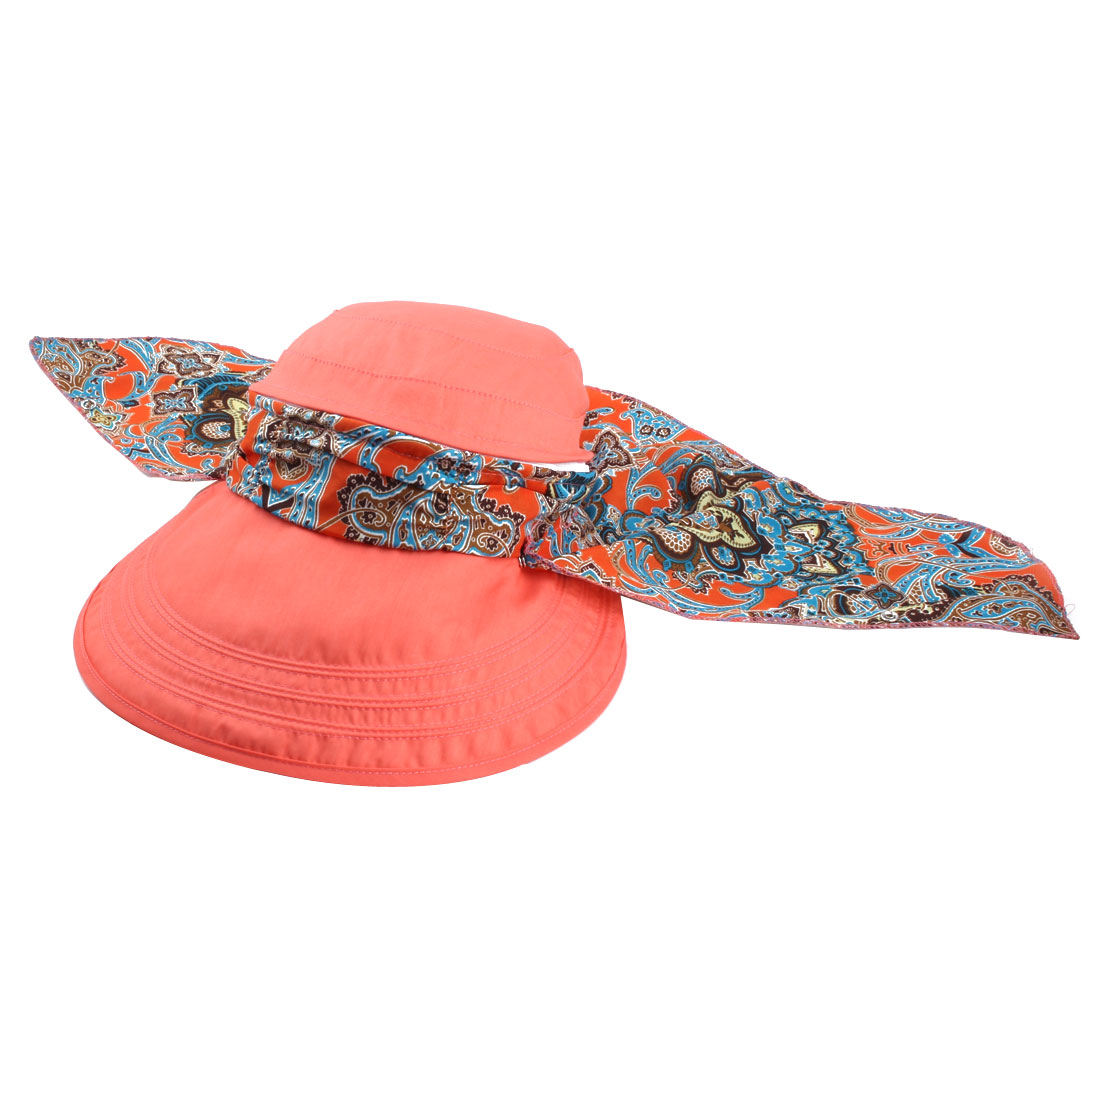 Ladies Women Outdoor Cotton Blends Adjustable Floppy Wide Brim Summer Sun Cap Beach Hat Salmon Pink